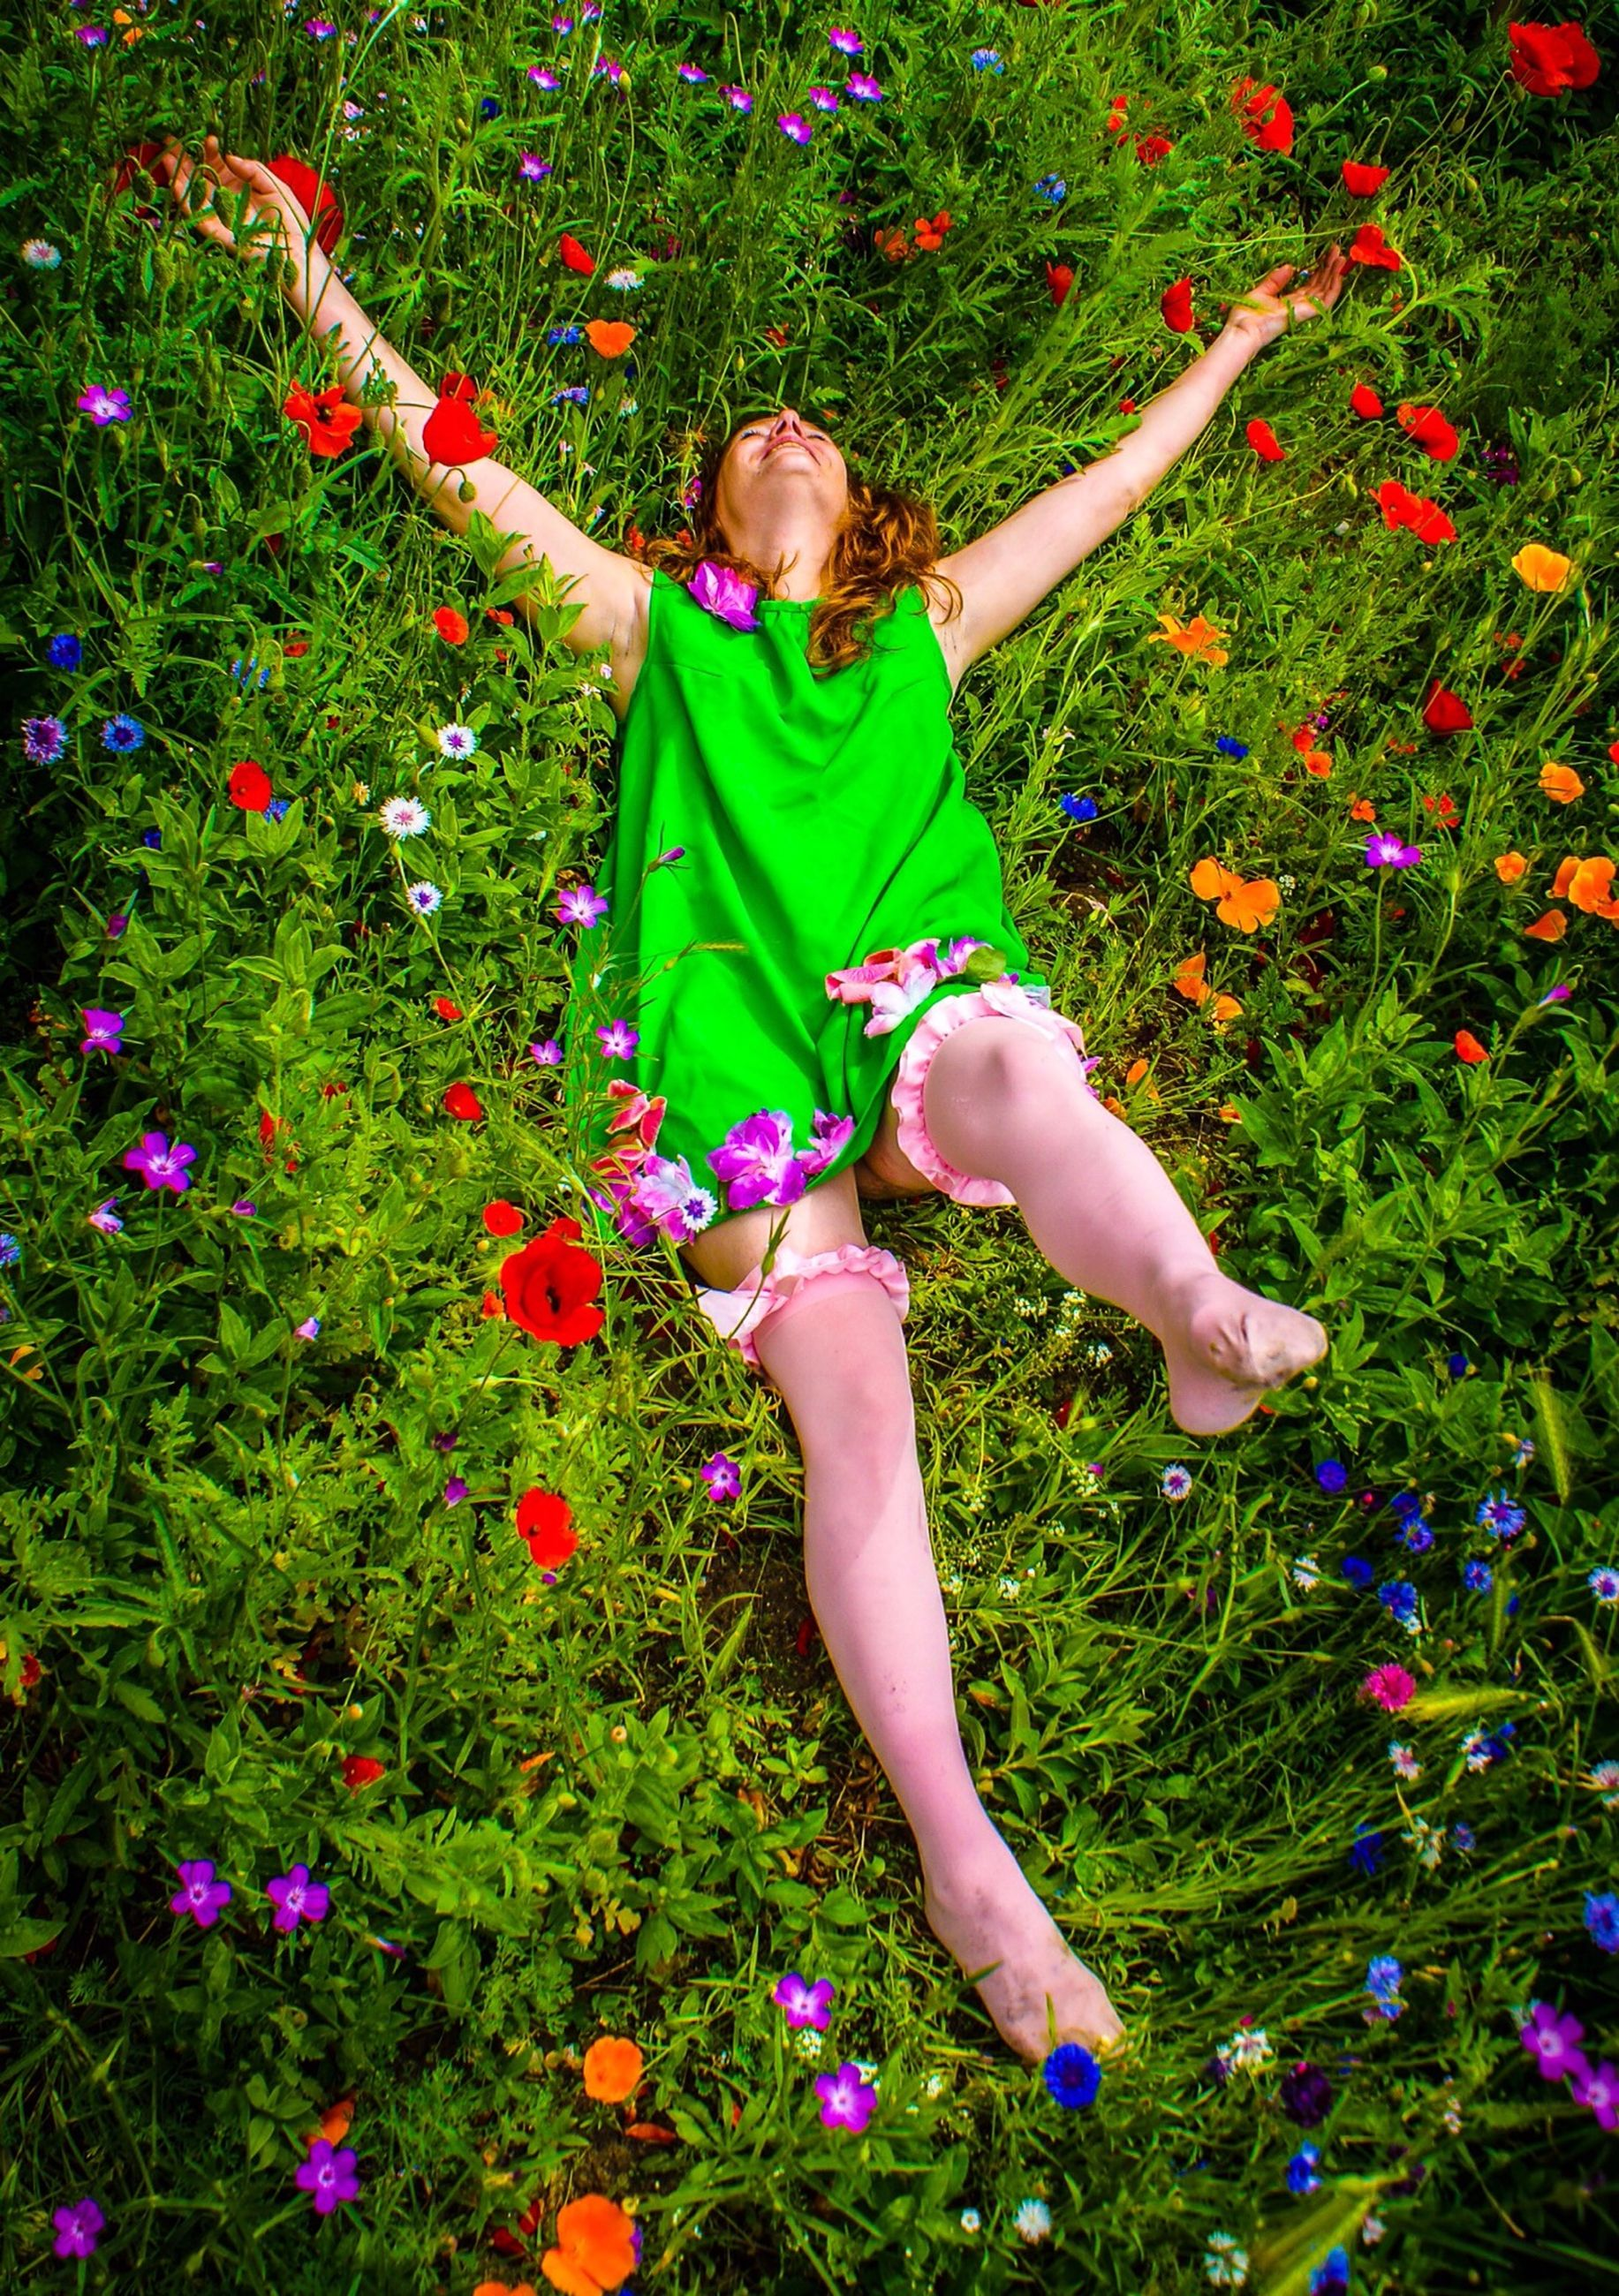 grass, flower, person, leisure activity, lifestyles, childhood, casual clothing, elementary age, full length, field, innocence, high angle view, girls, cute, growth, fragility, grassy, freshness